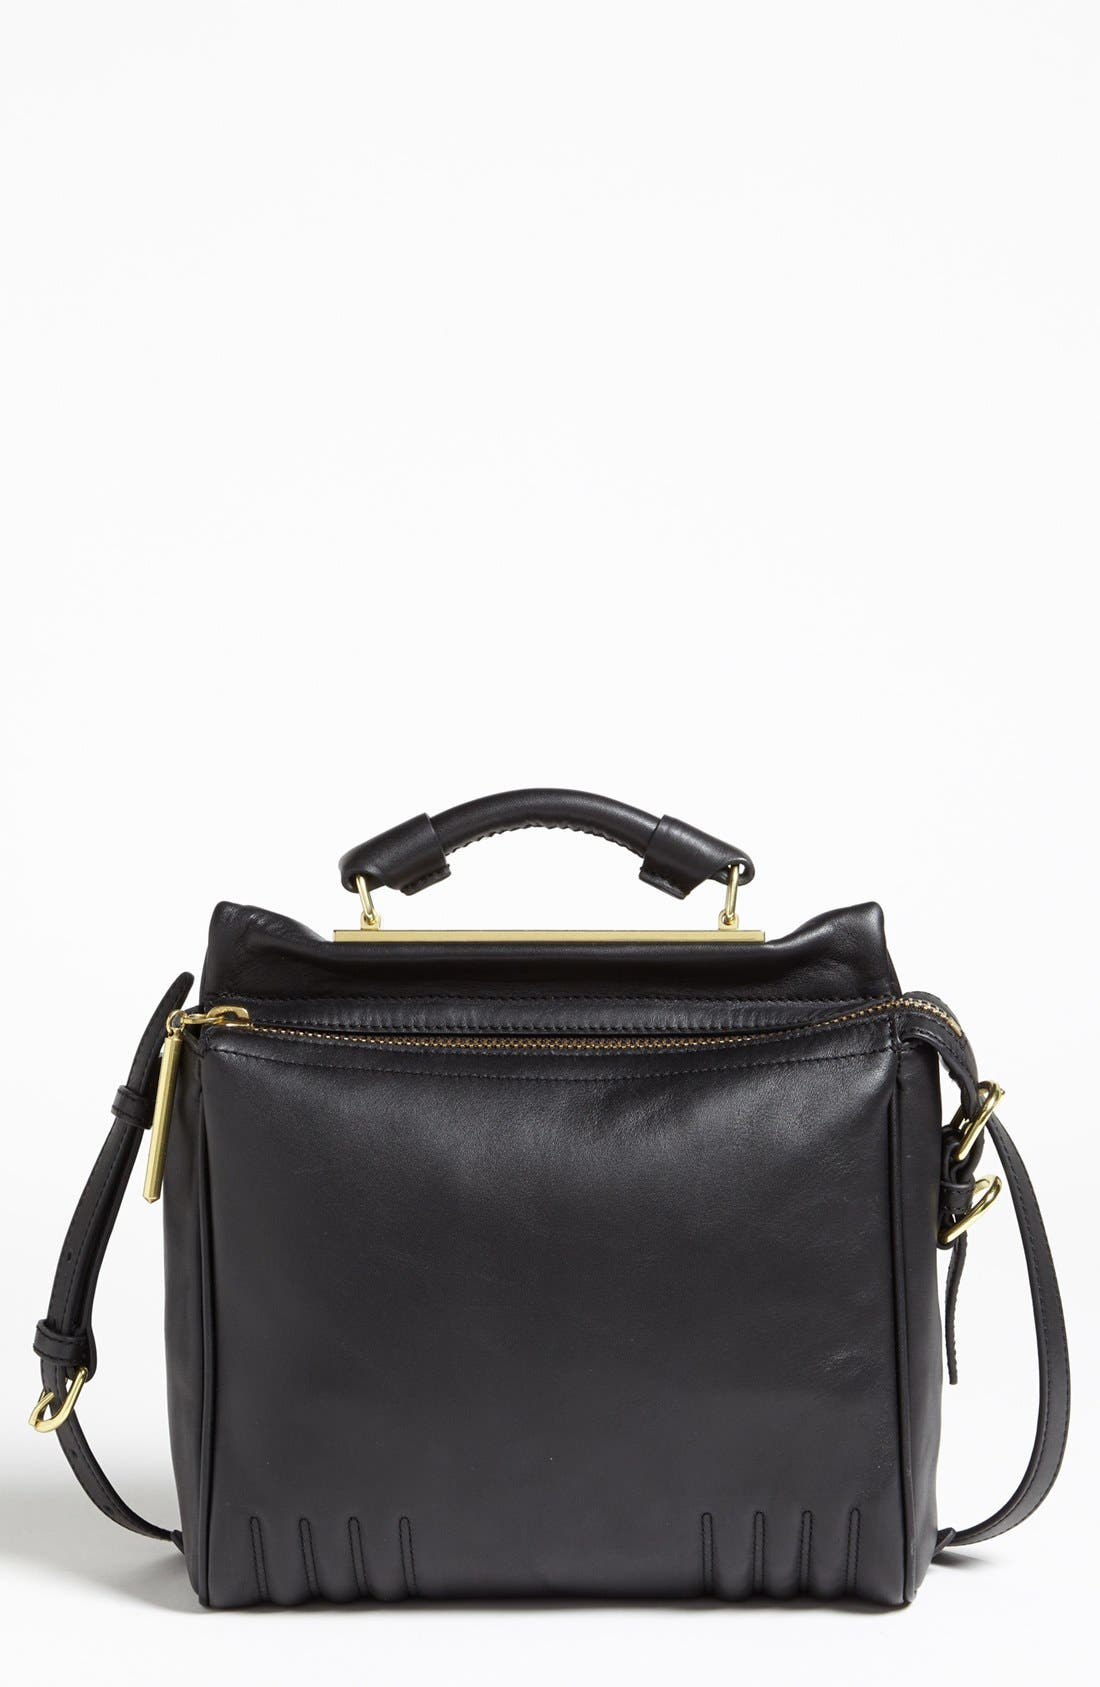 Main Image - 3.1 Phillip Lim 'Small Ryder' Leather Satchel